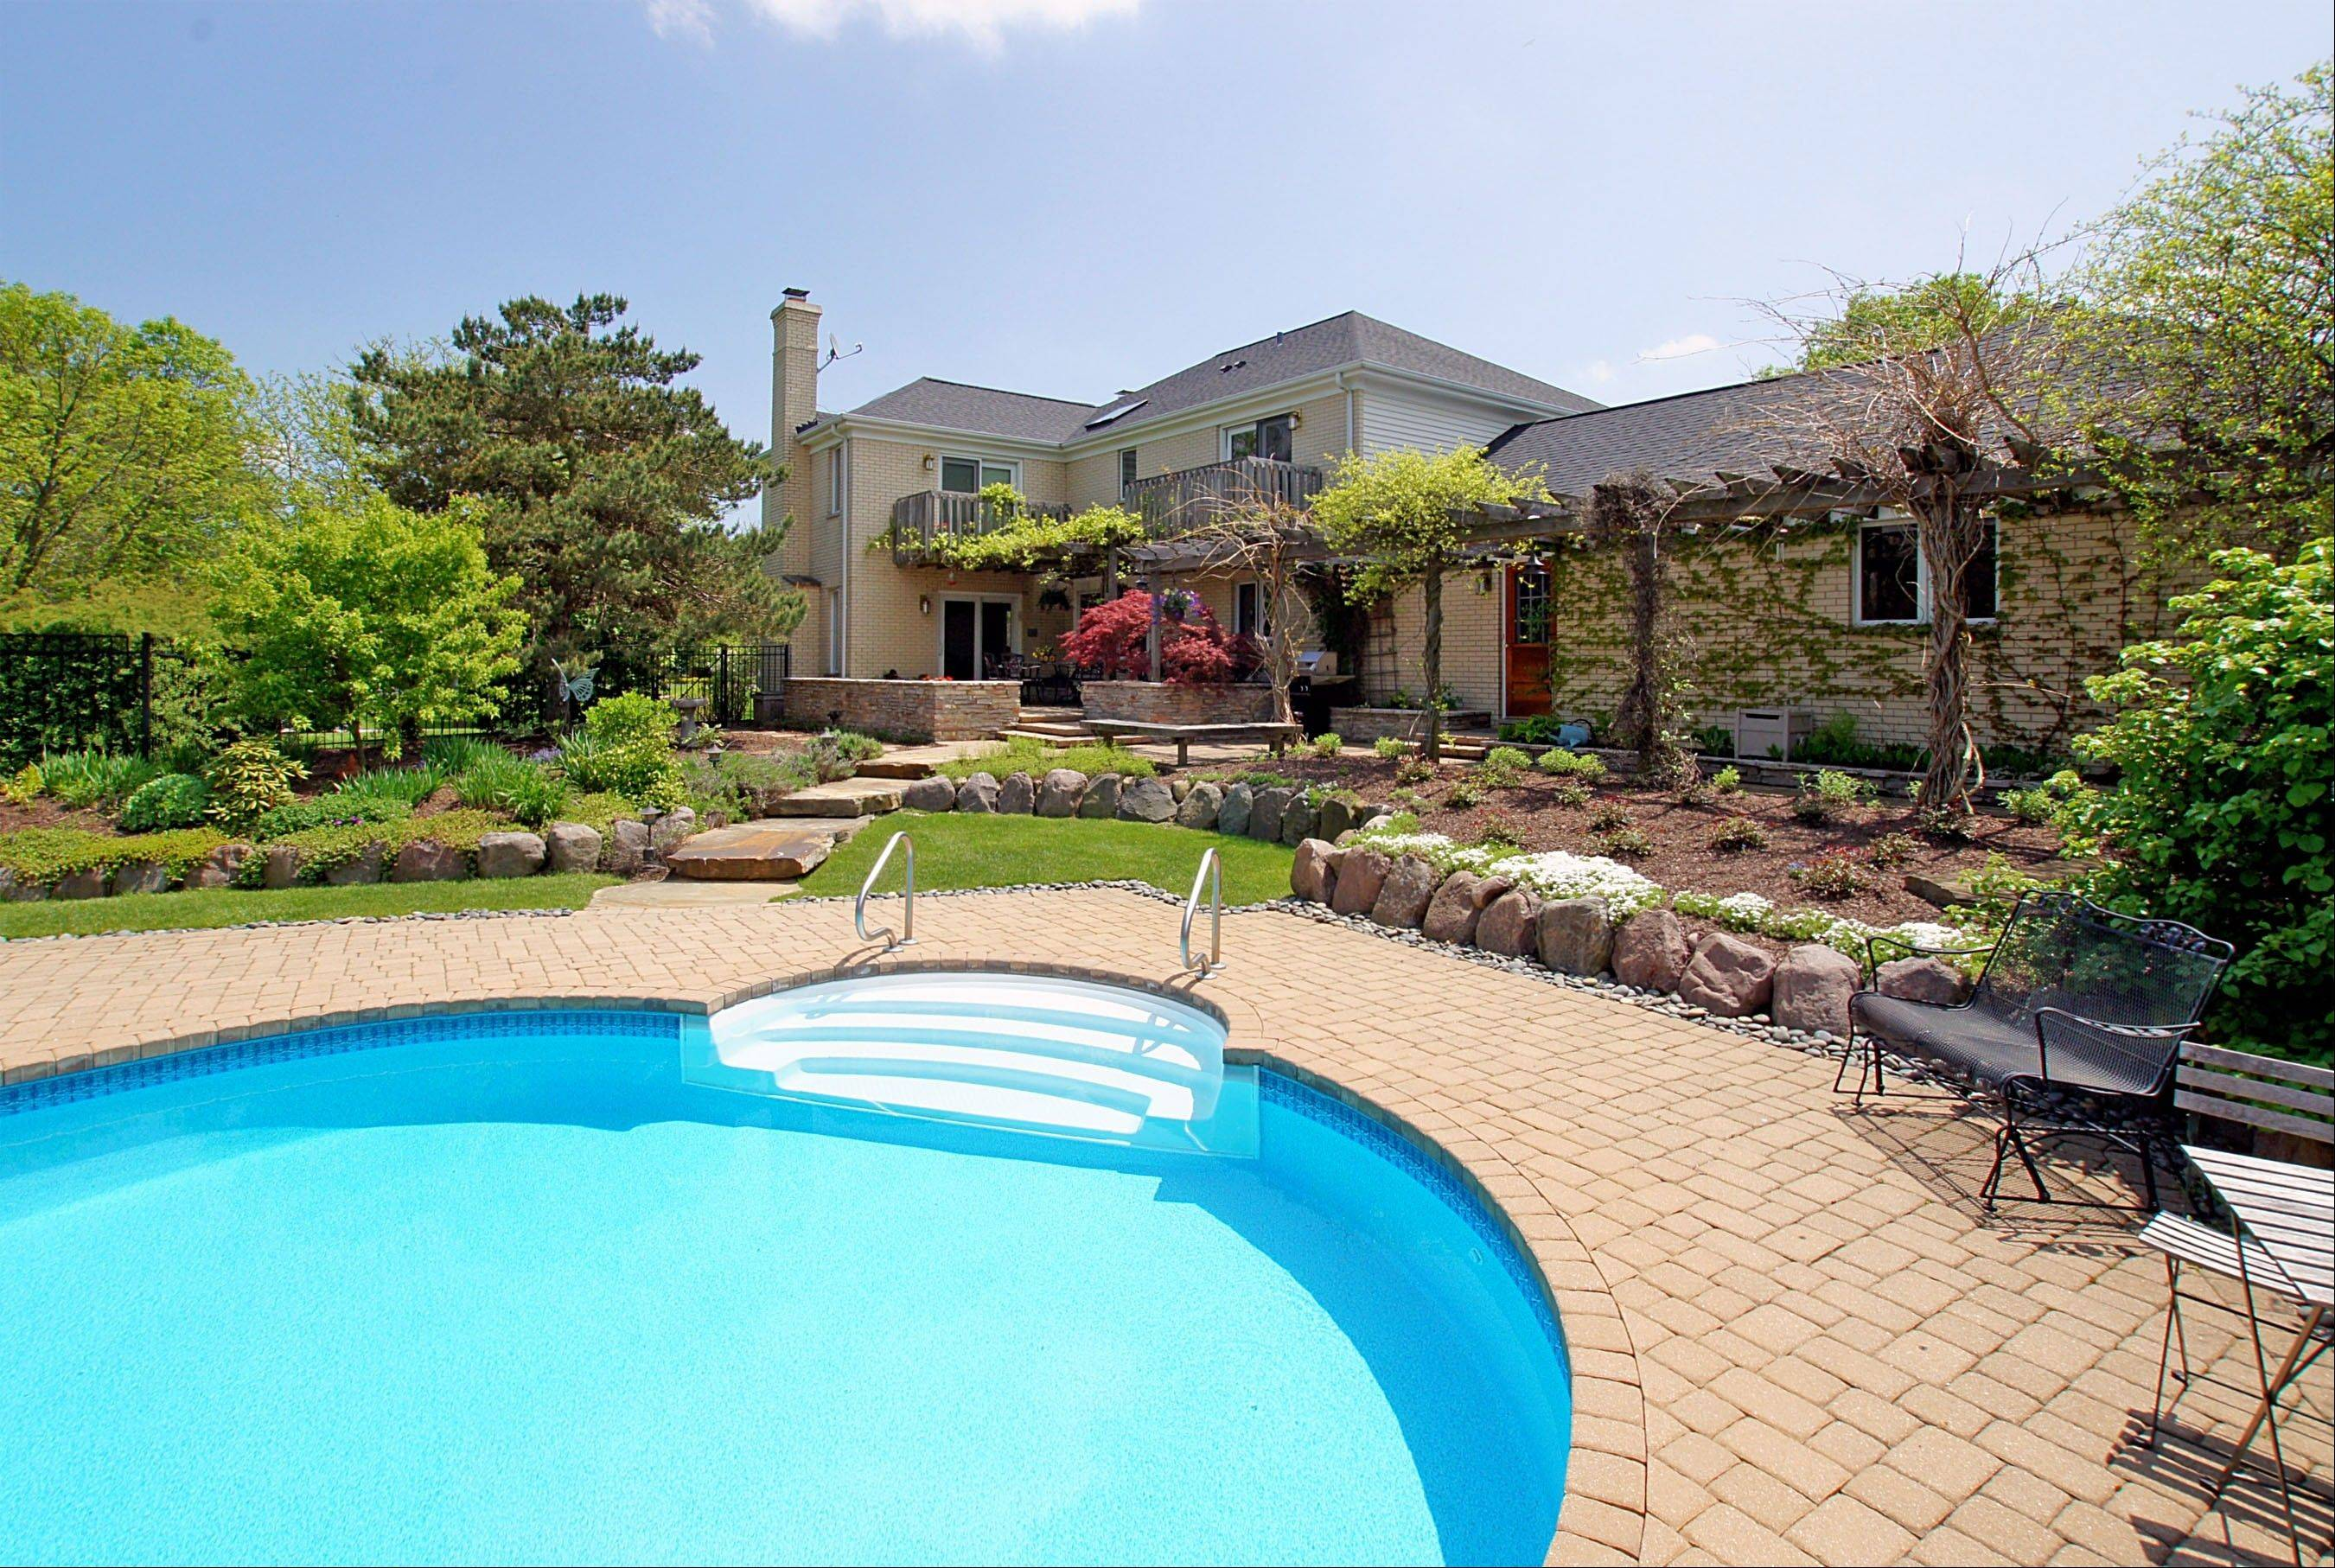 For entertaining or just kicking back, the house has a swimming pool, hot tub and gazebo.